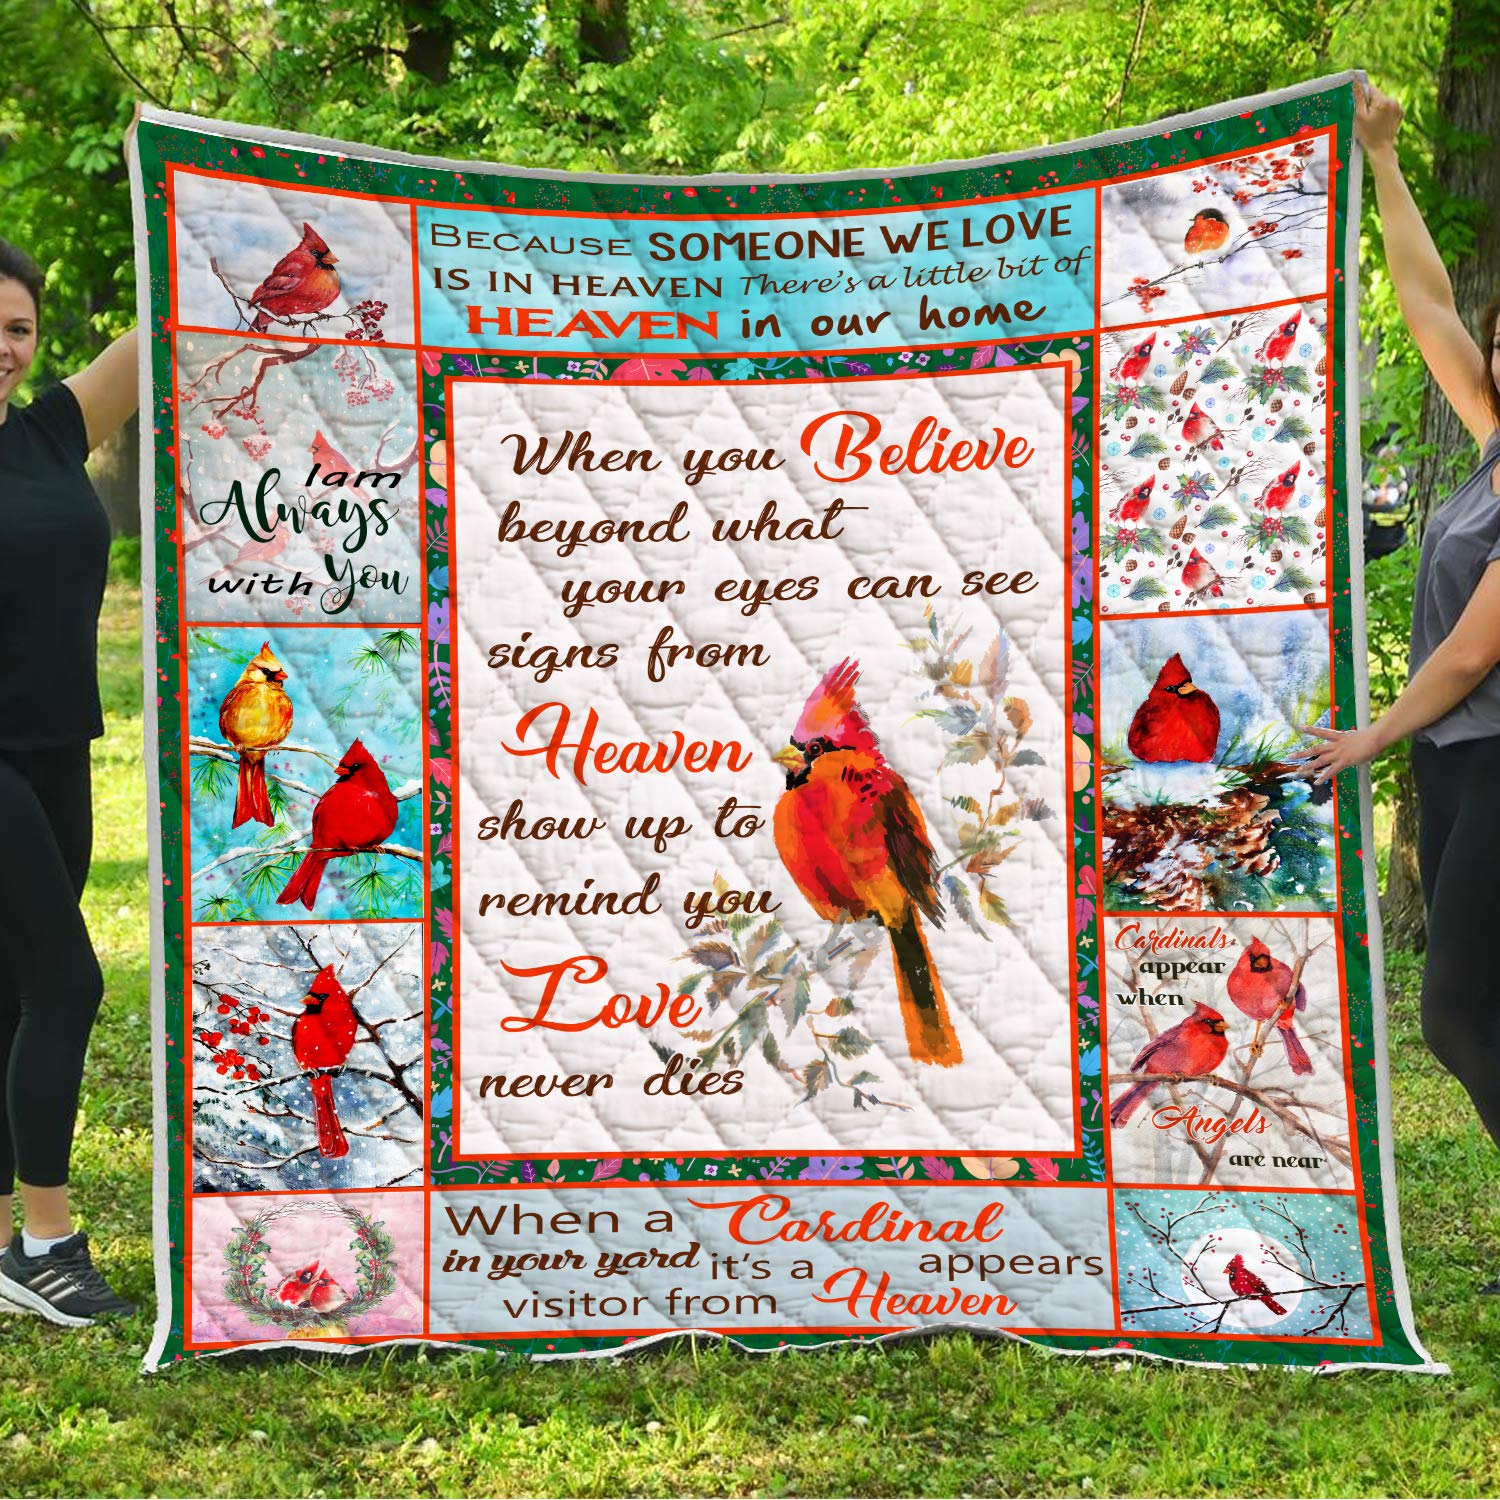 Memorial Cardinals Appear Quilt Pattern Quilted Blanket Birthday Christmas Memory Gifts for Dad Mom Wife Husband Son Daughter Kids Baby Grandma Nana Papa Mother Father Sister Brother Daddy Mommy by VTH Global